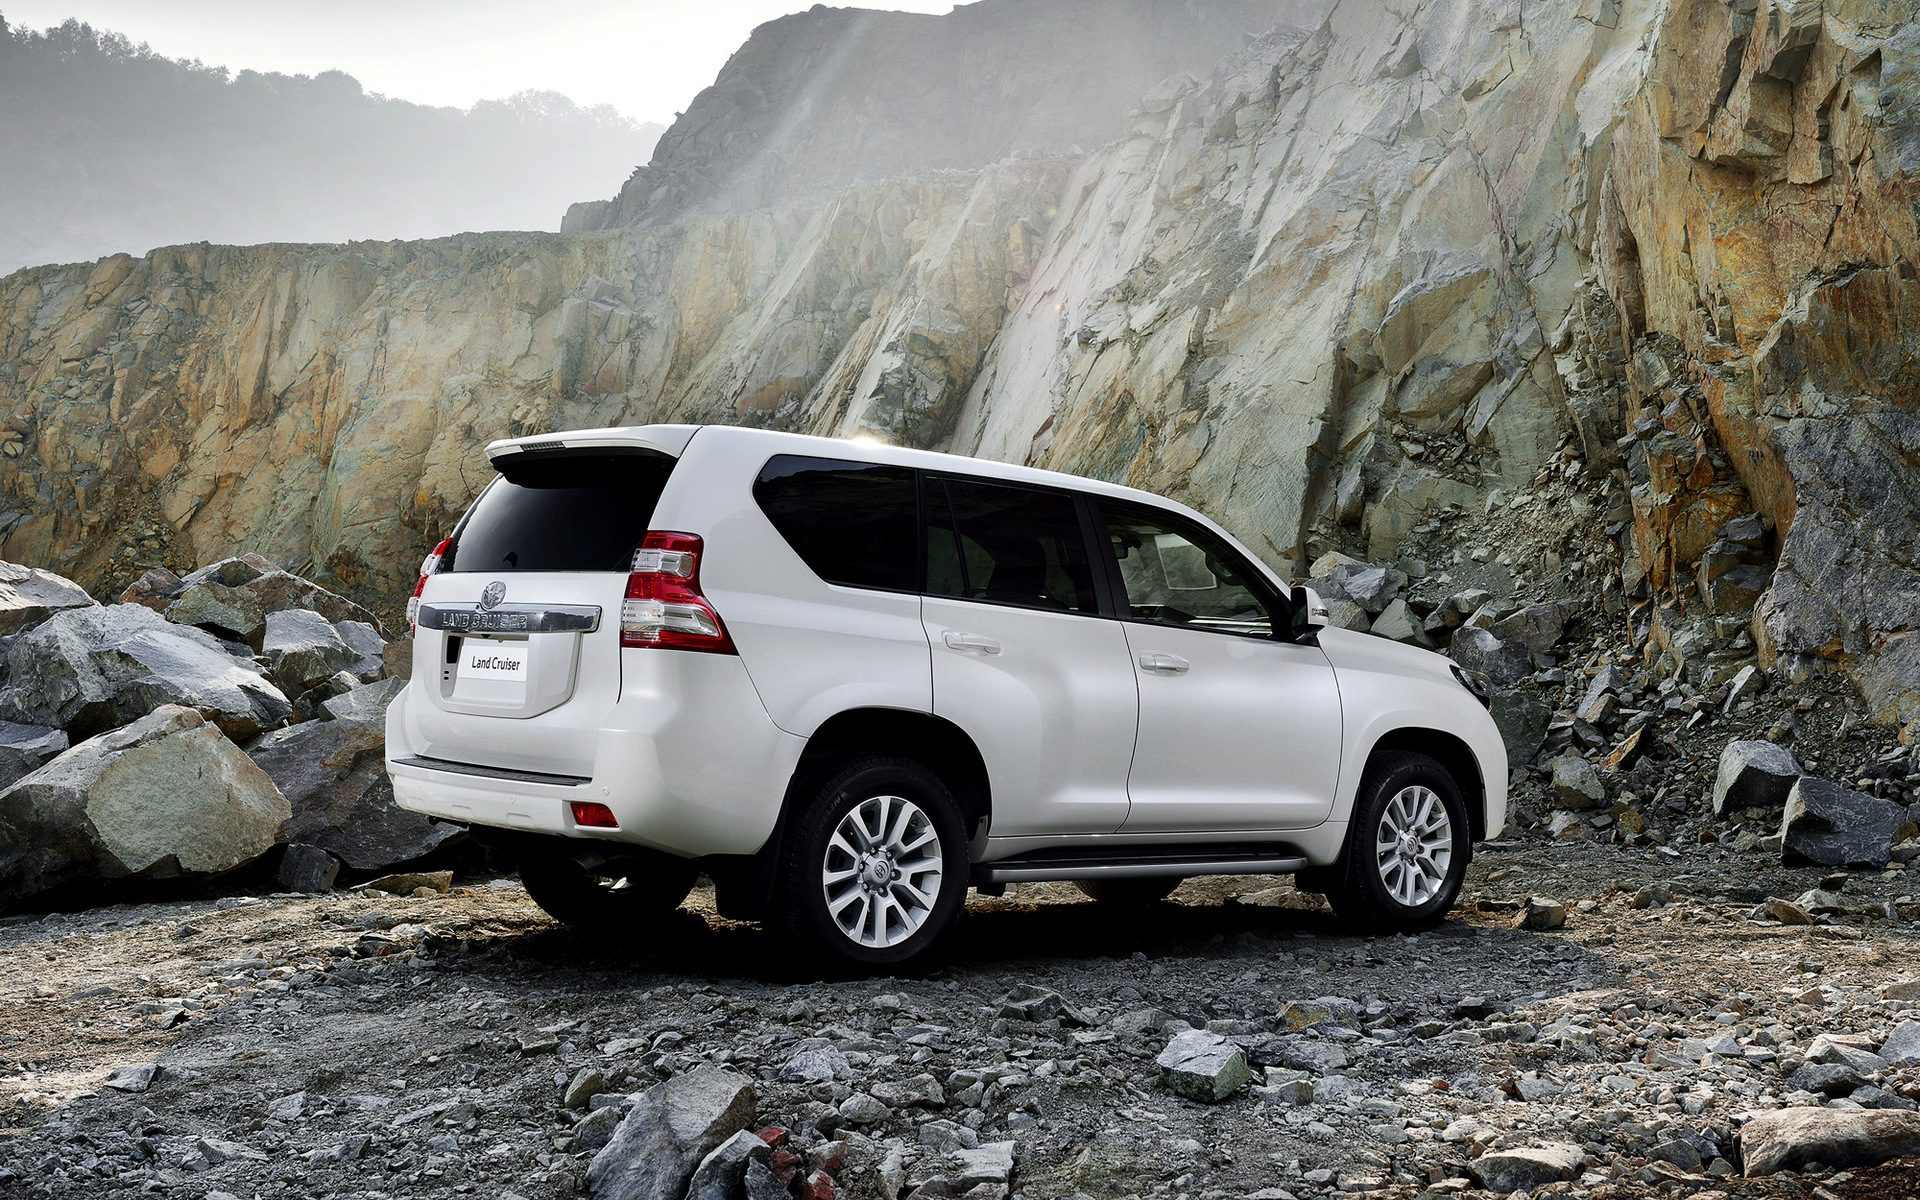 2013 toyota land cruiser wallpapers and hd images car - Land cruiser hd wallpaper ...